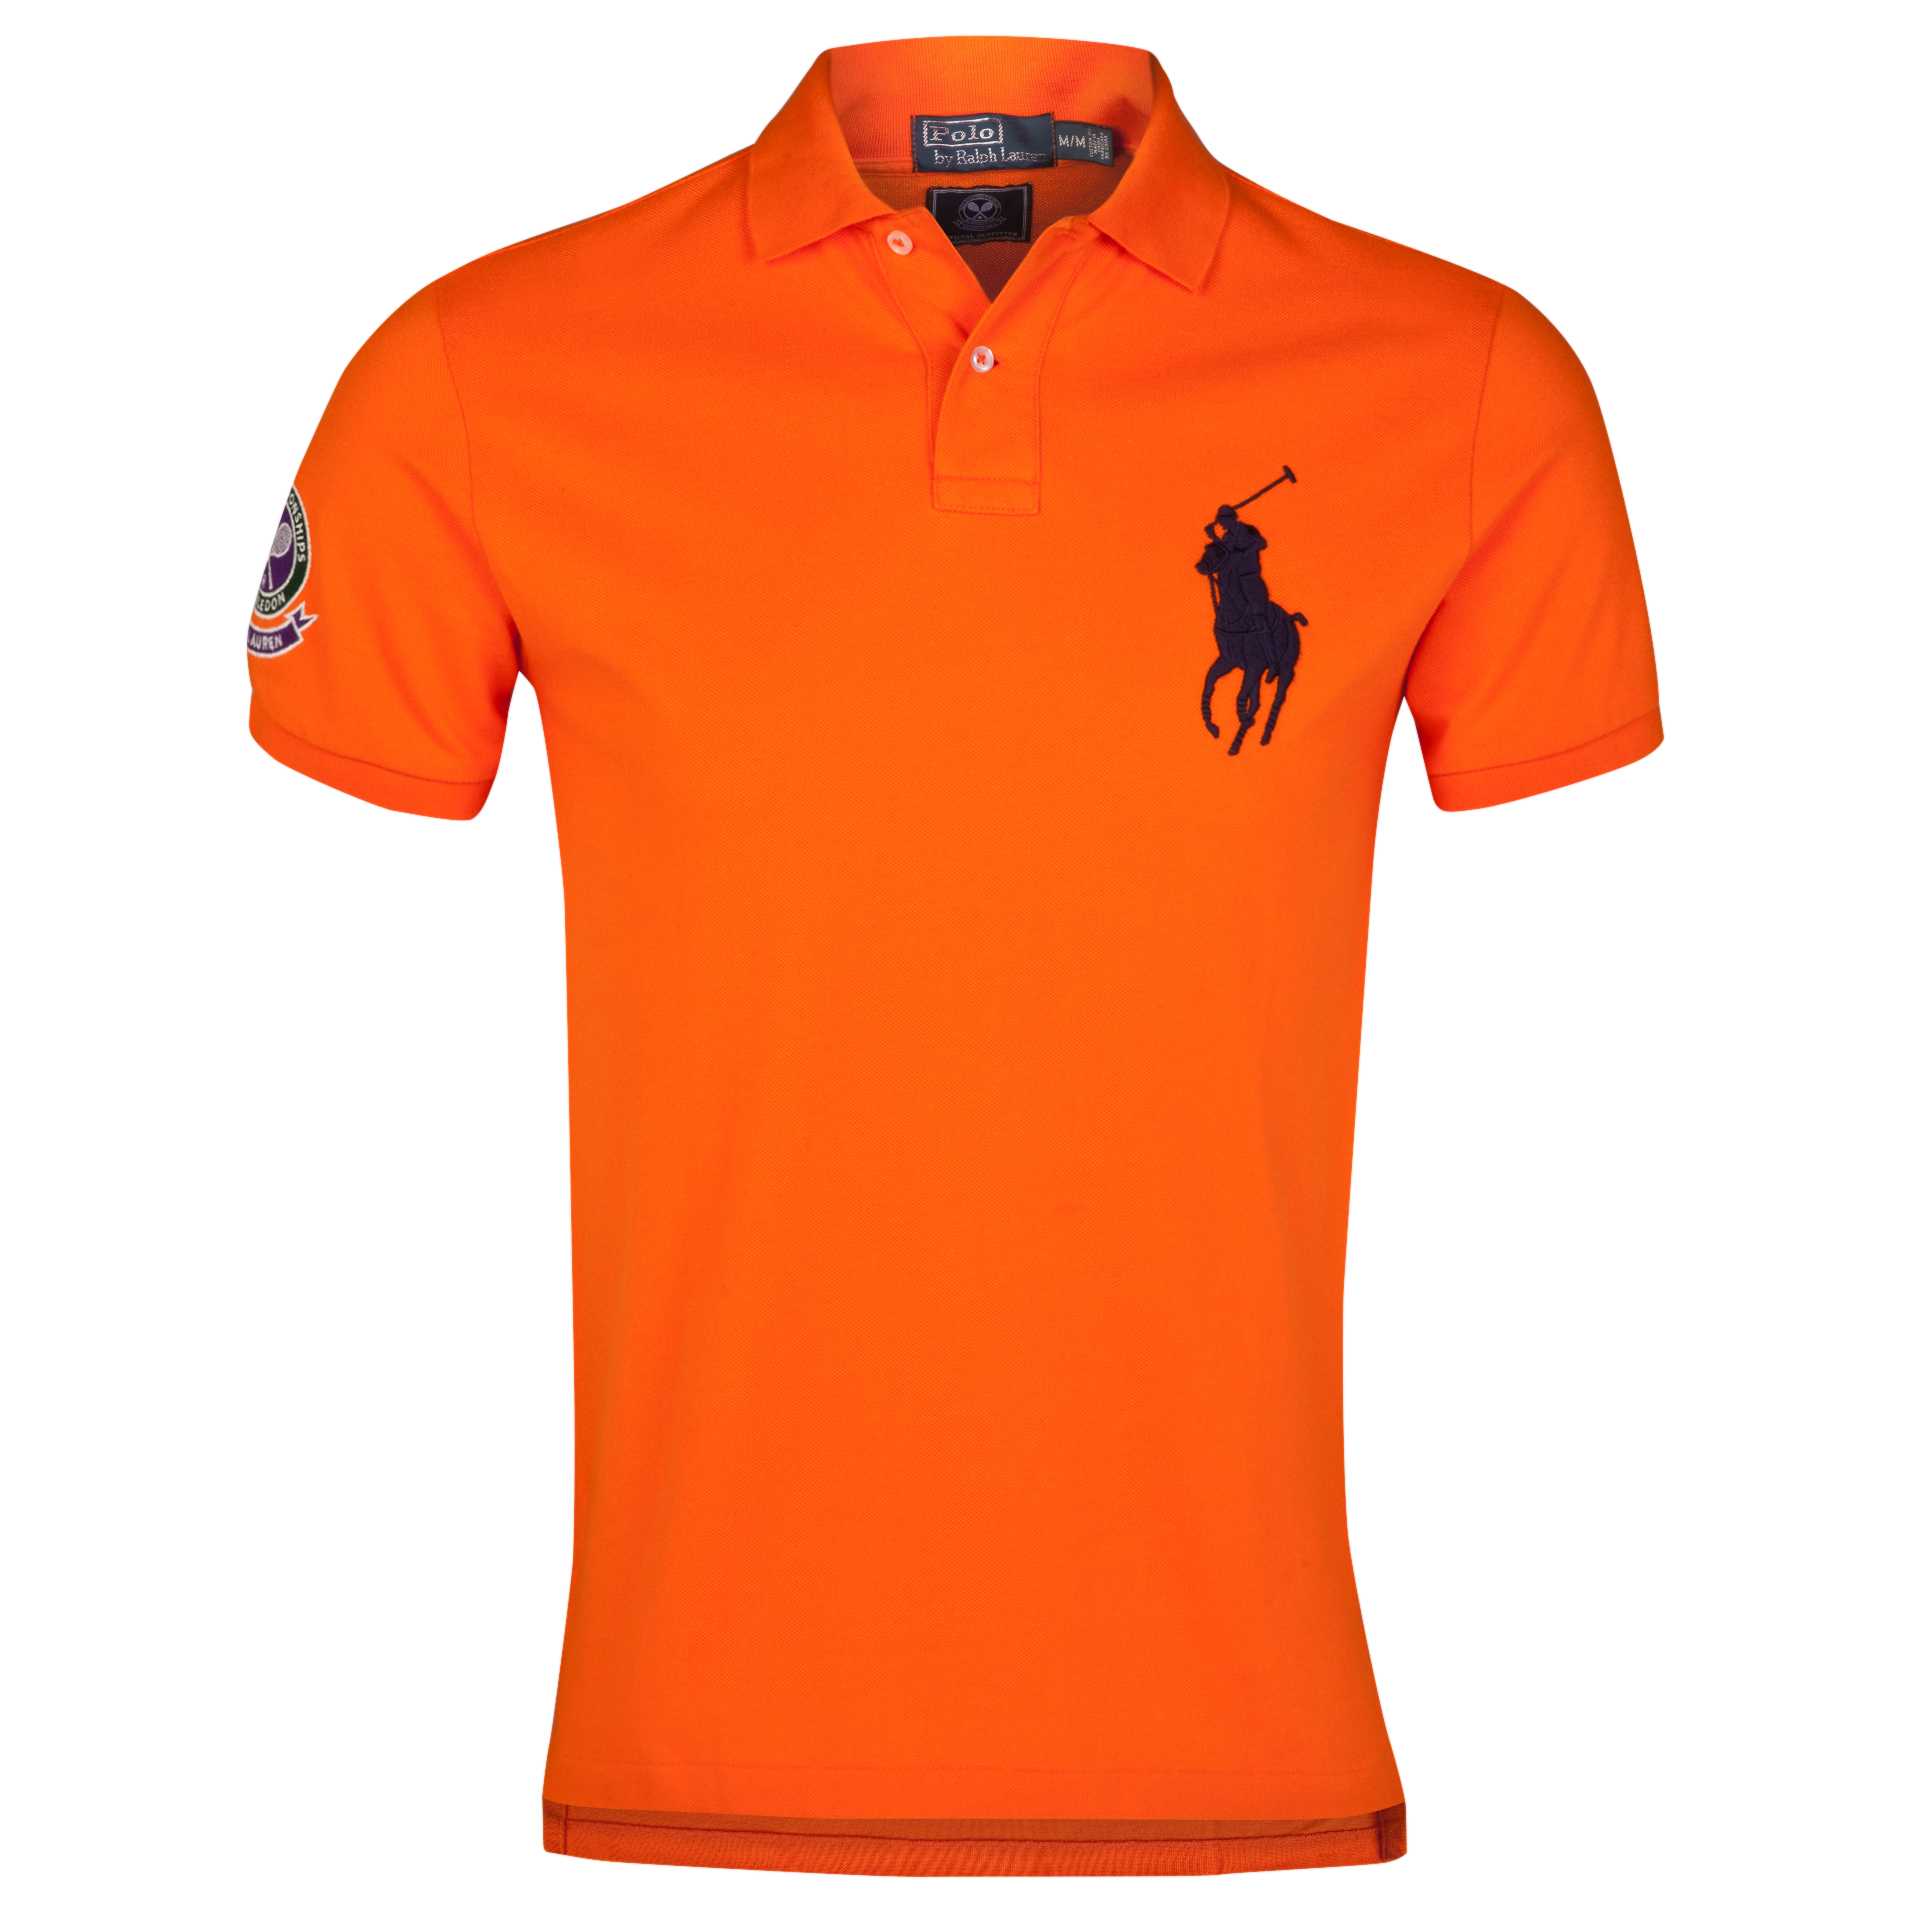 Wimbledon Polo Ralph Lauren Custom Fit Basic Mesh Polo - Nautical Orange